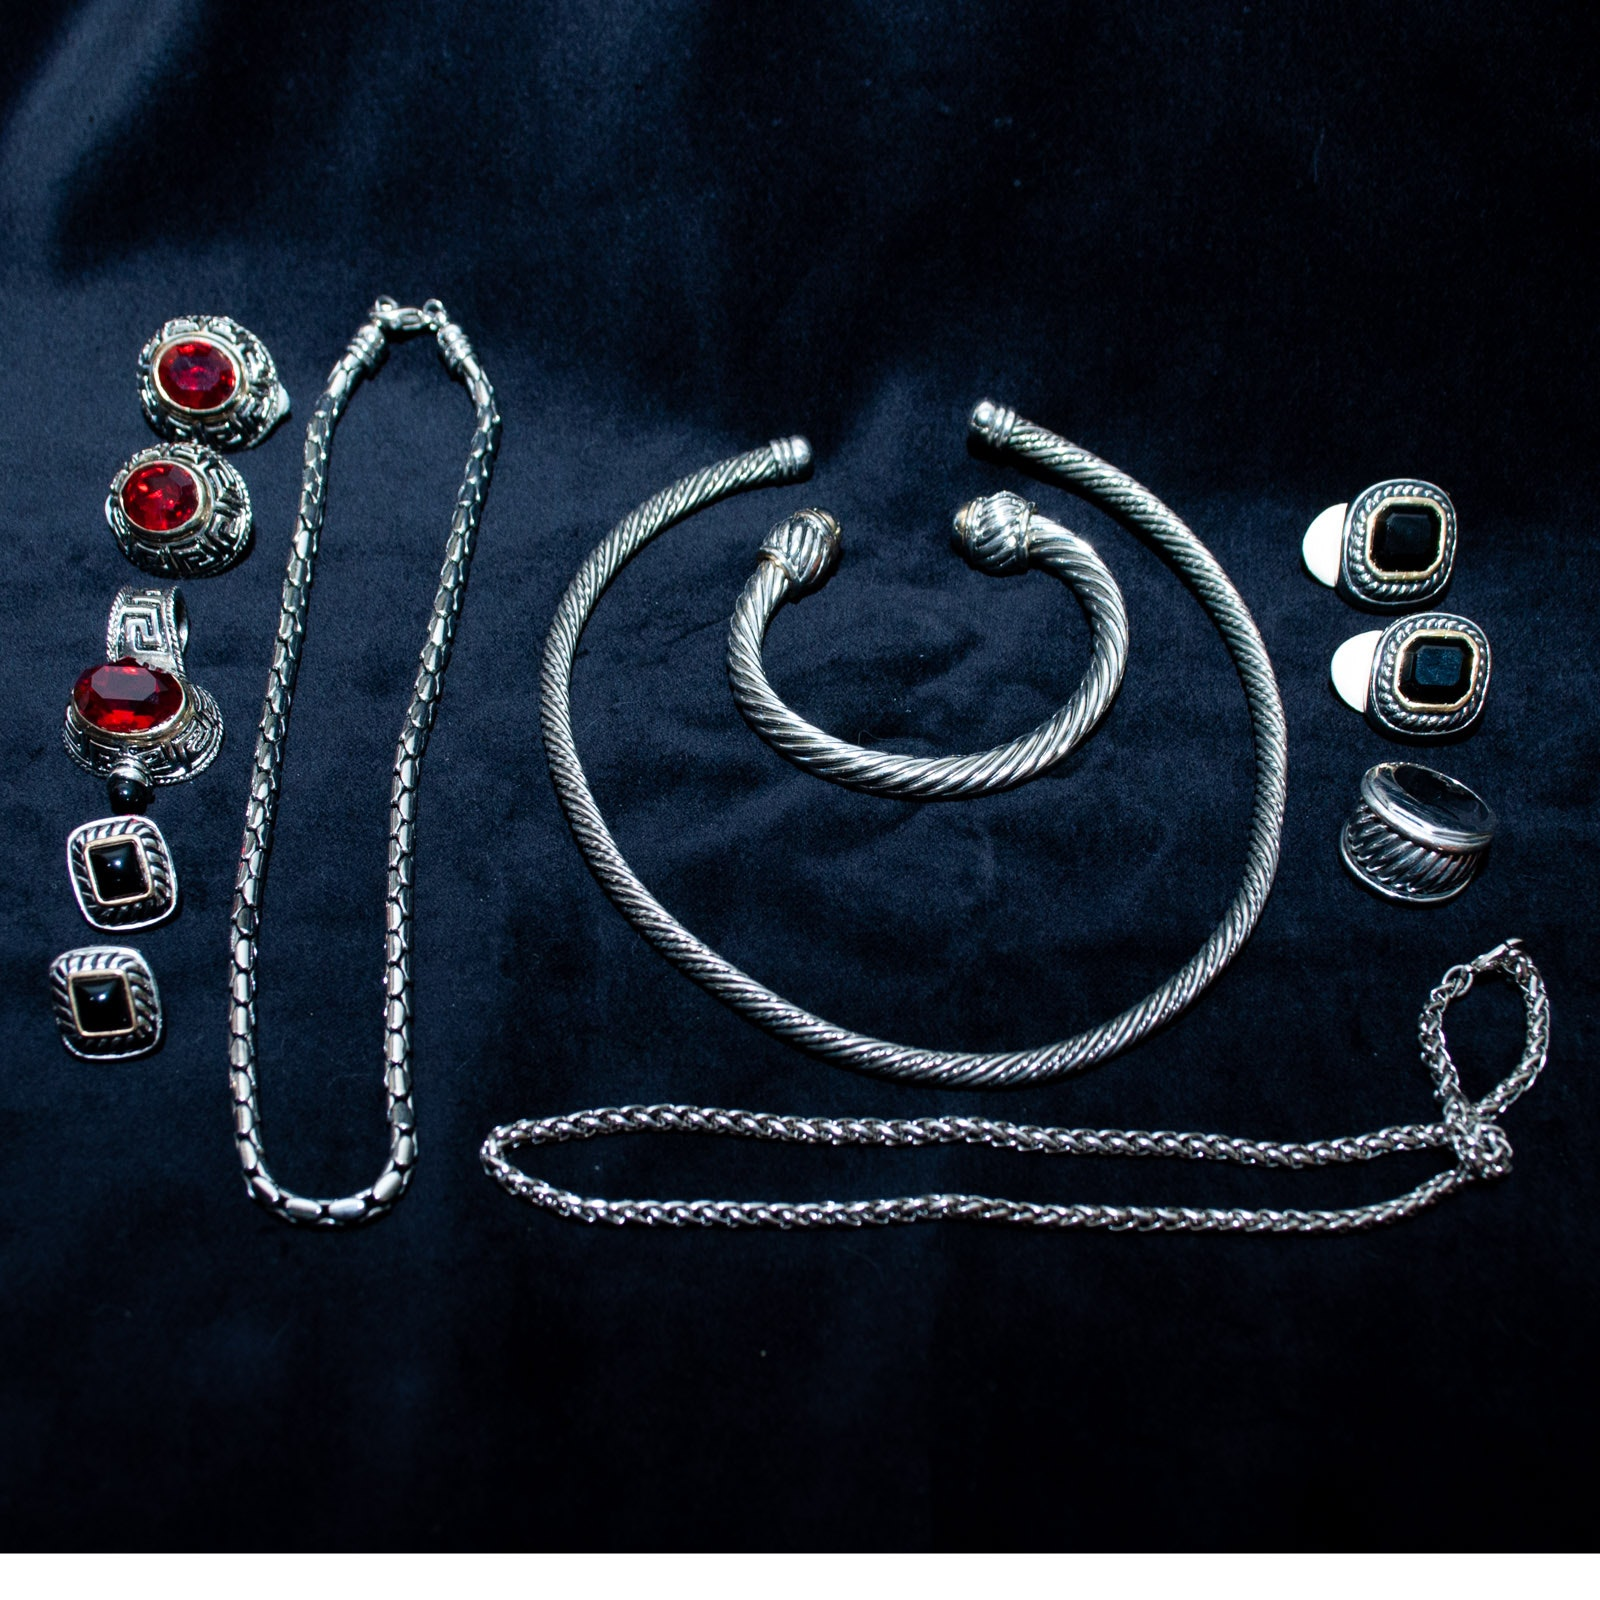 Silver and Gold Tone Cable Jewelry with Red and Black Glass Stones